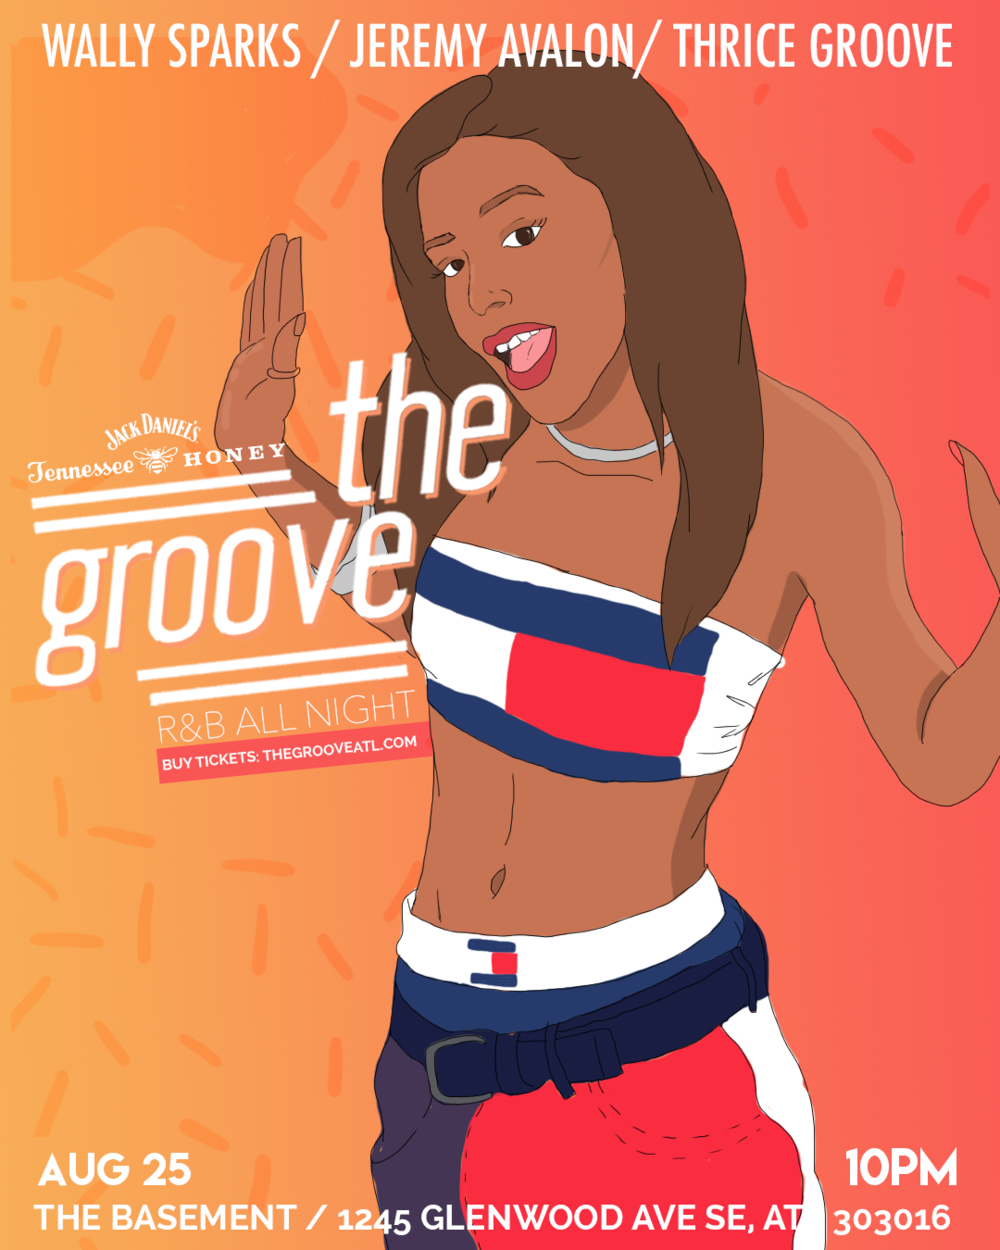 002-the-groove-082517-logo.png